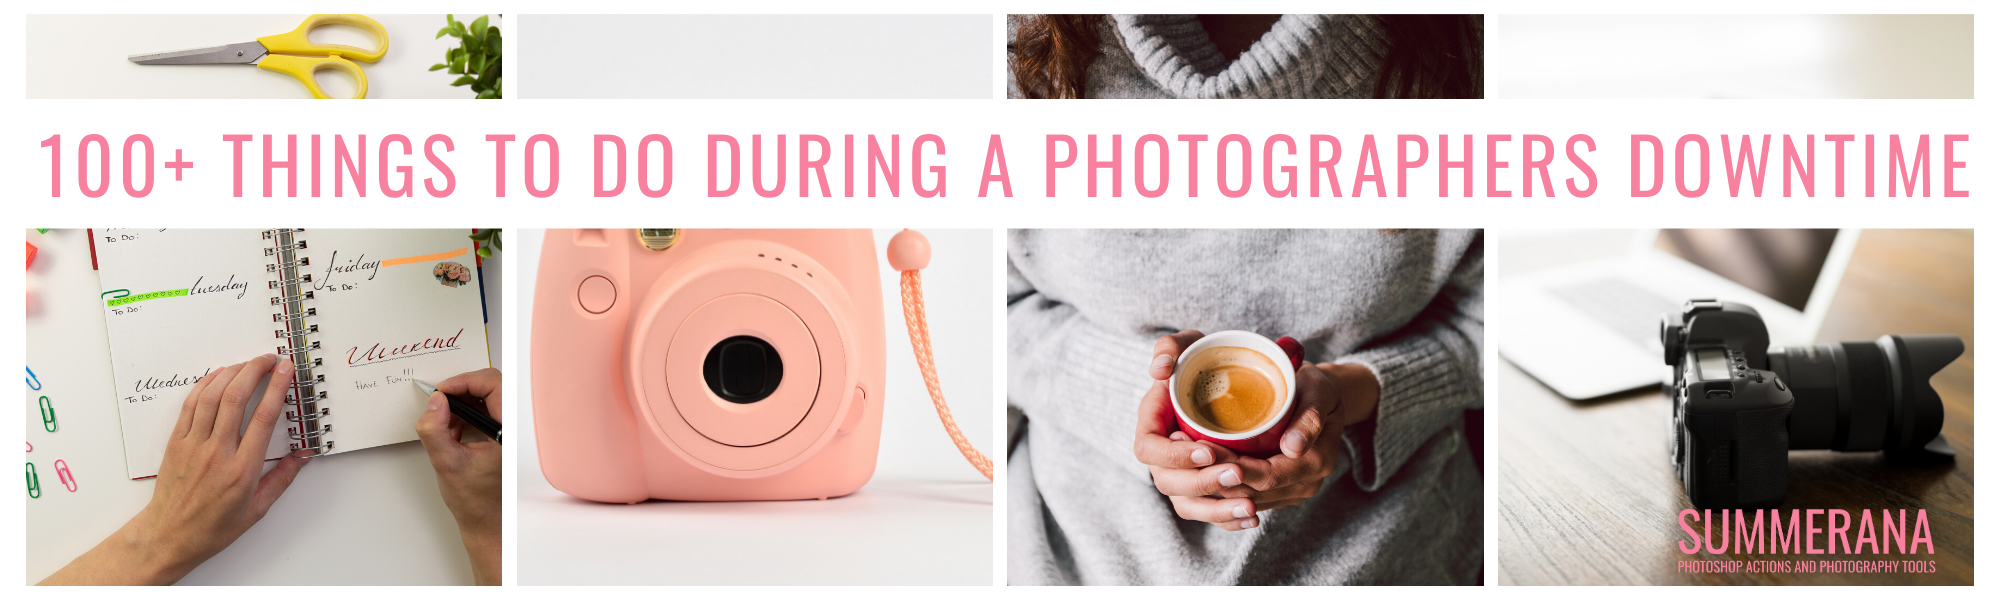 100+ things for photographers to do in downtime